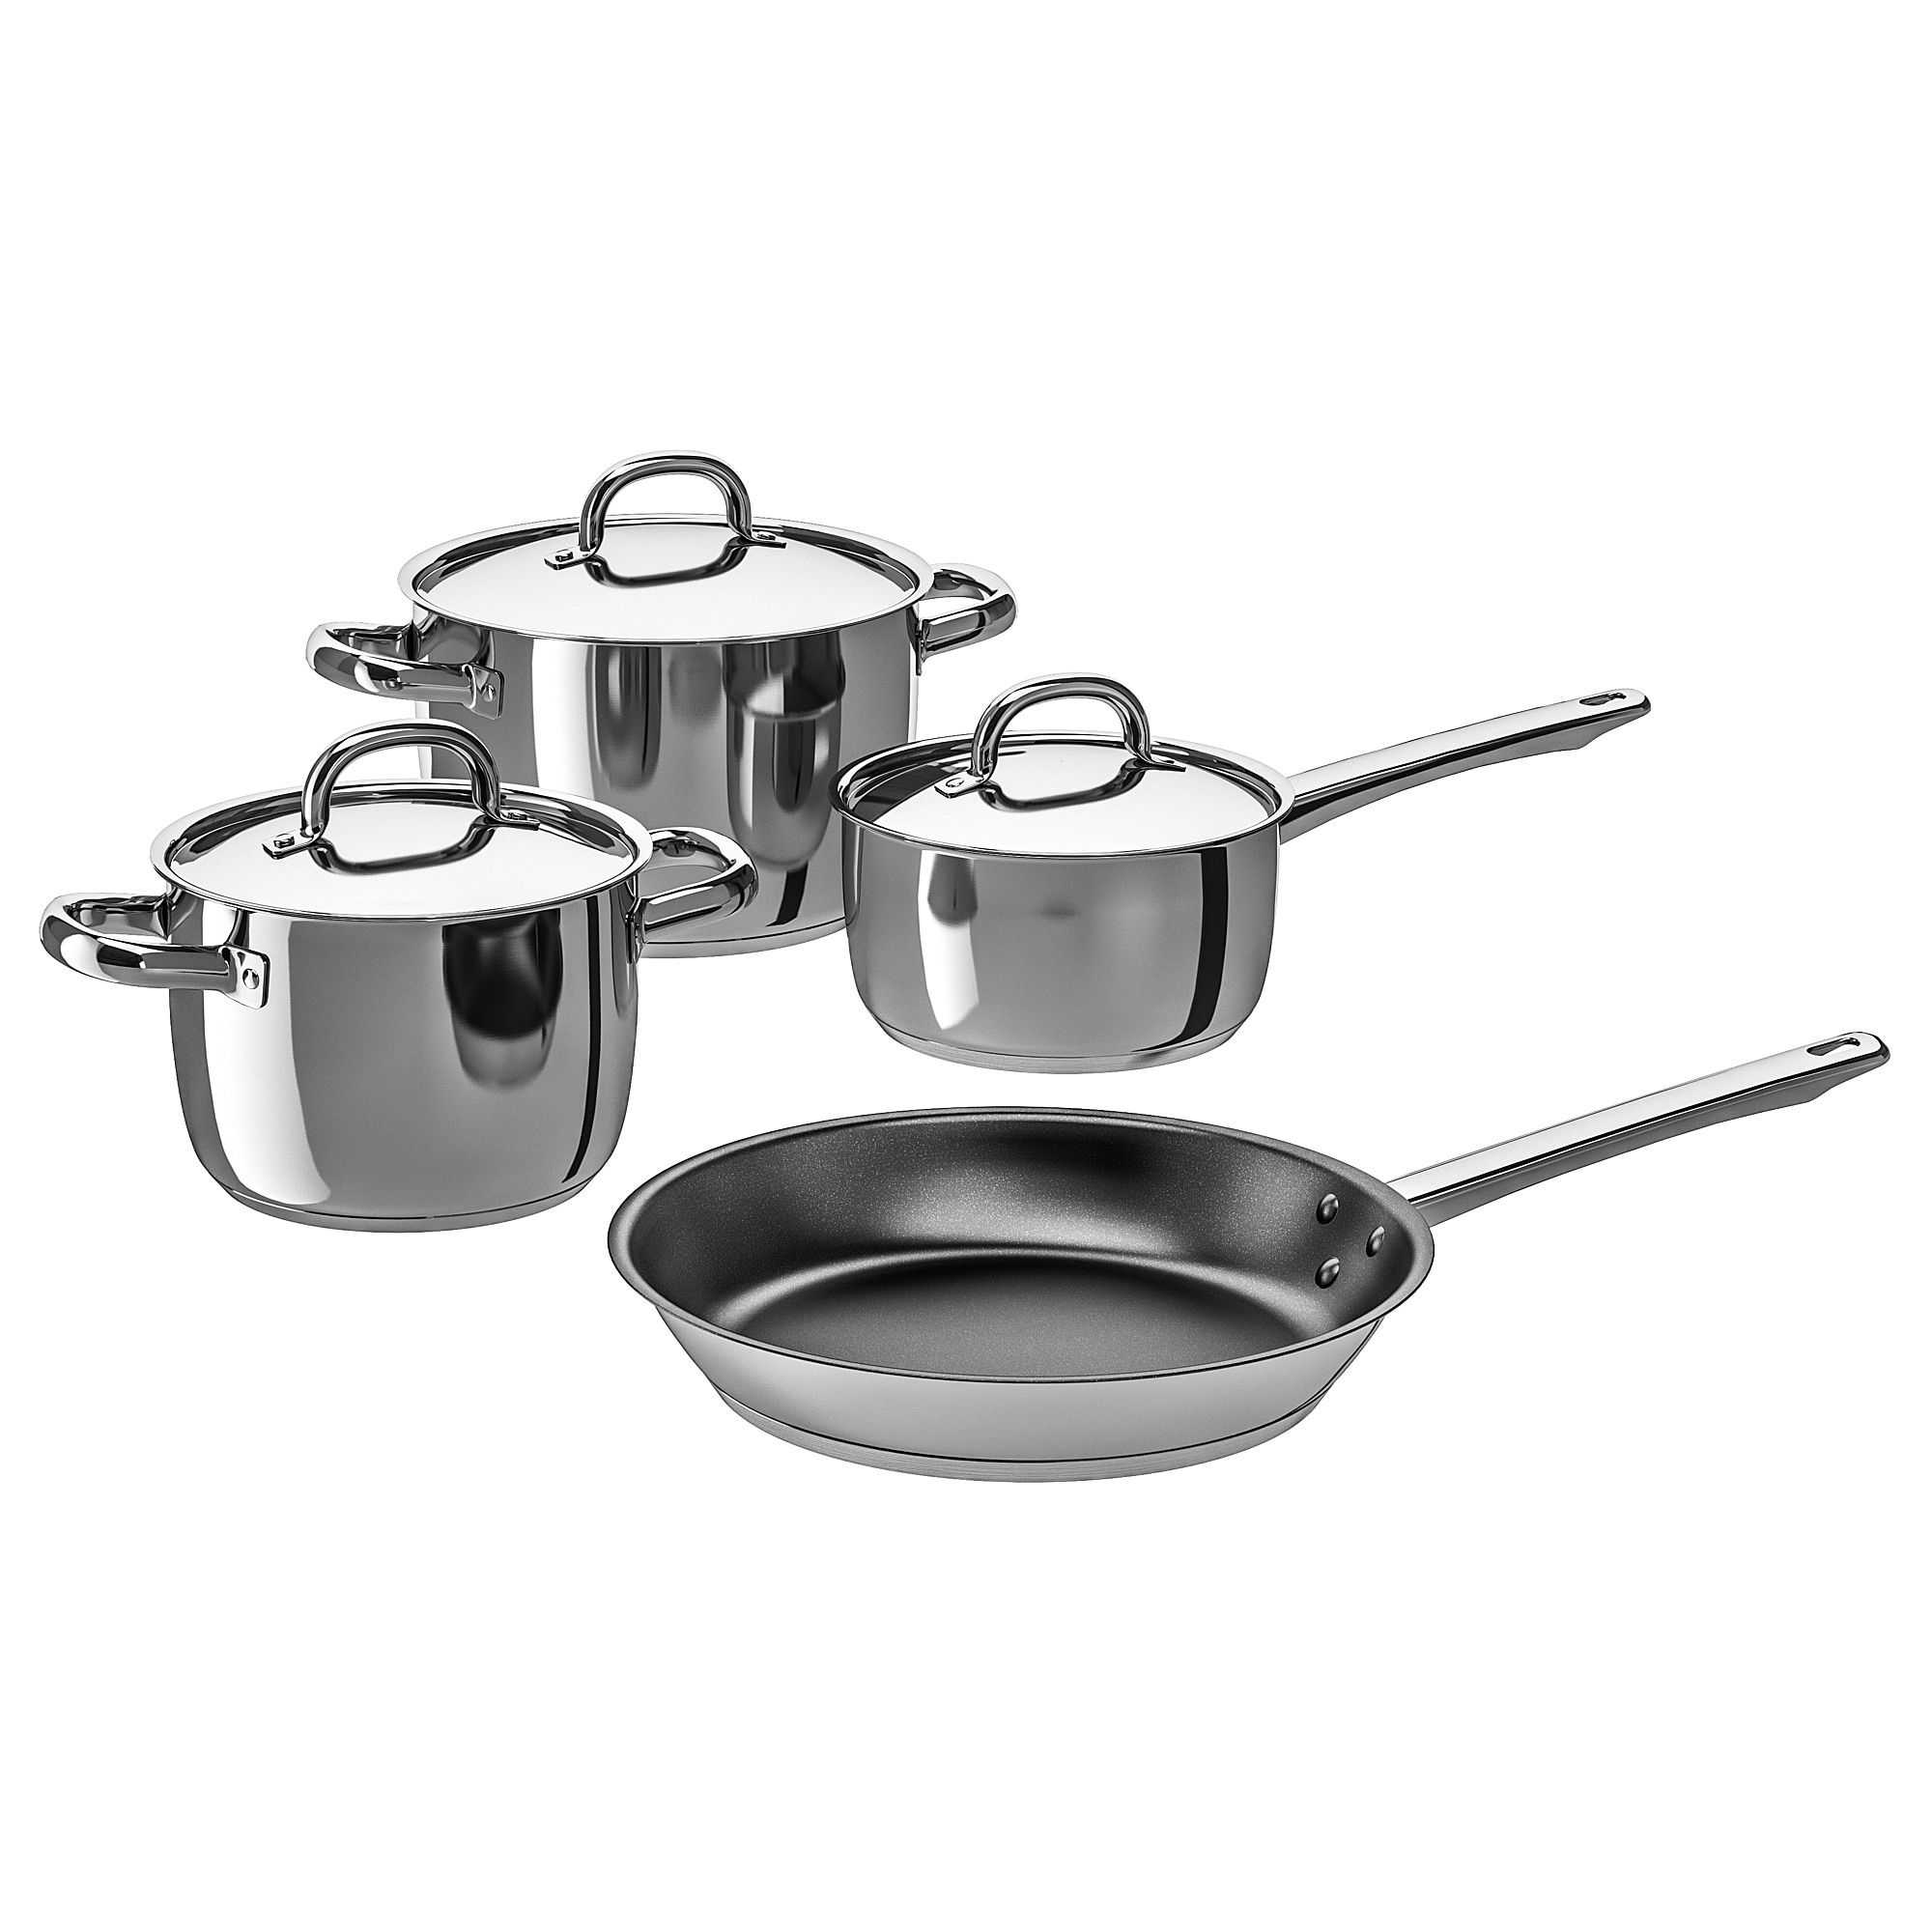 Oumbarlig 7 Piece Cookware Set Cookware Set Induction Cookware Cookware